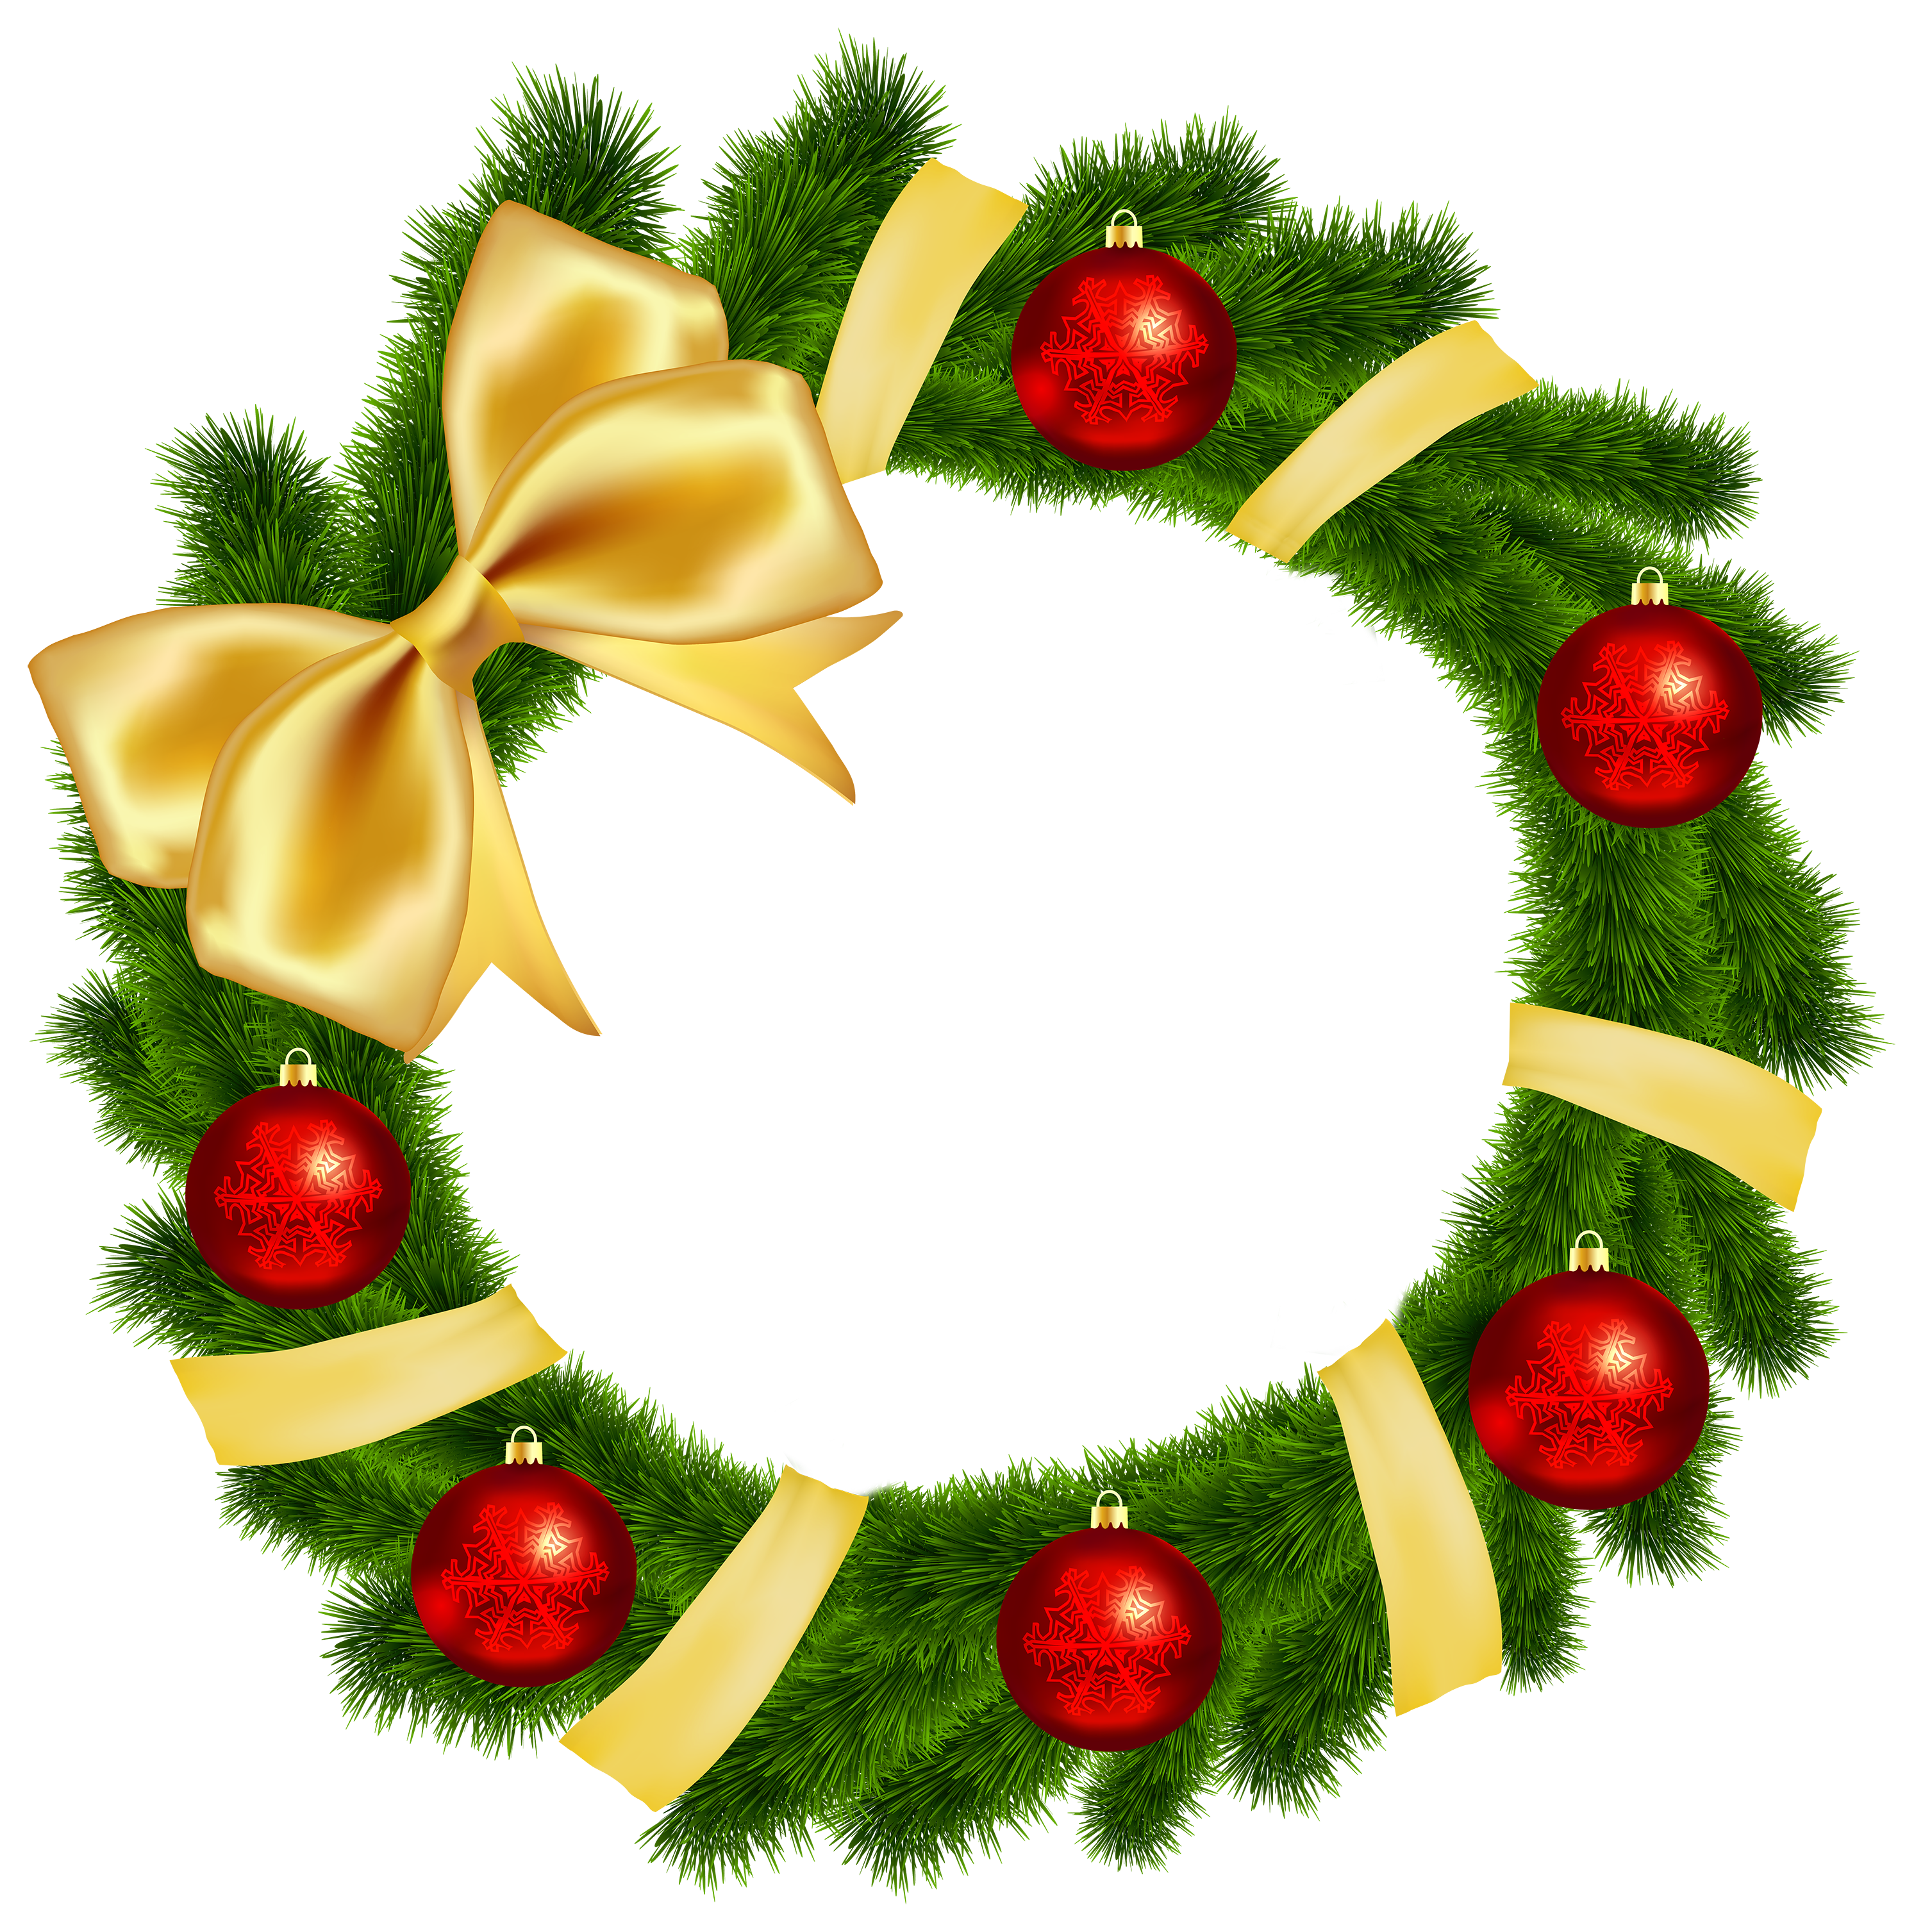 Christmas Graphics Transparent.Free Png Hd Christmas Wreath Transparent Hd Christmas Wreath